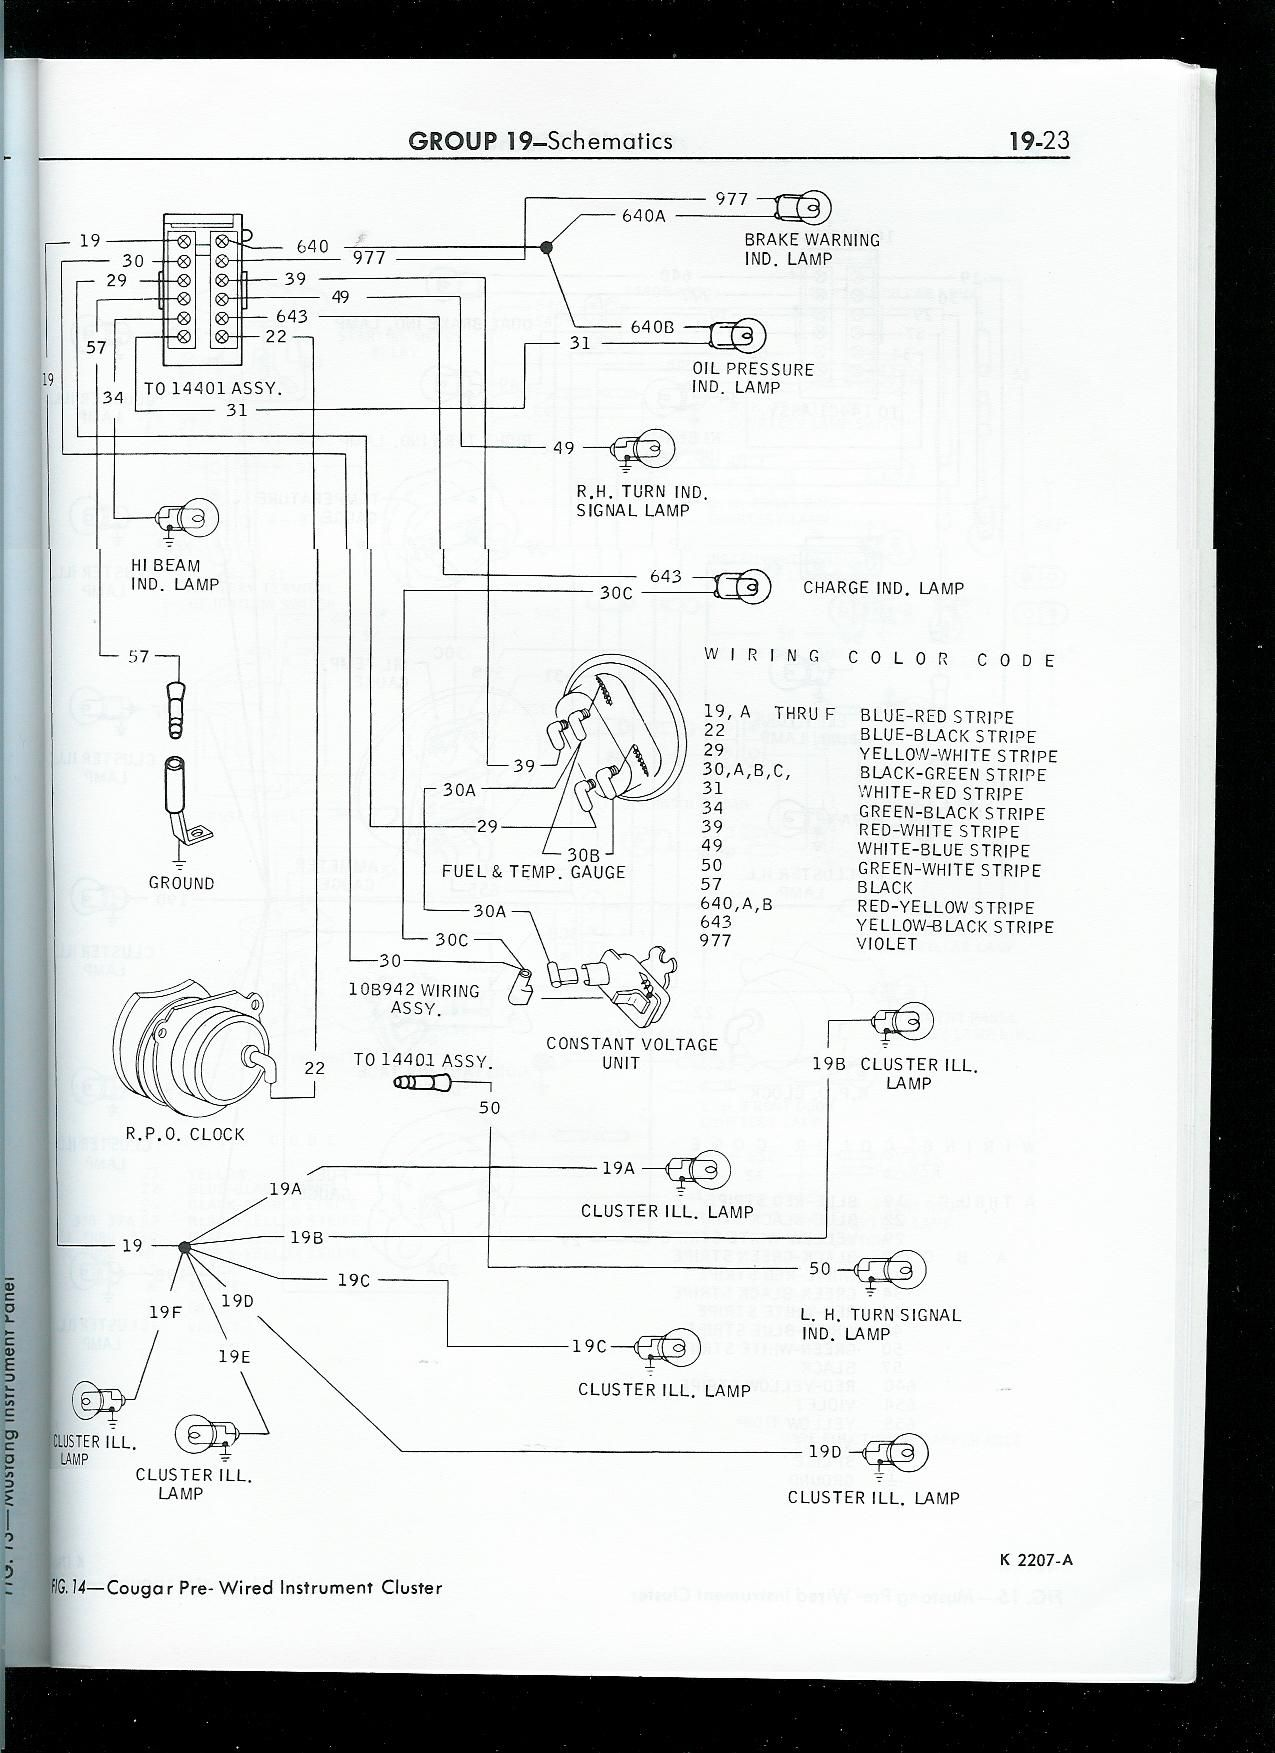 1967 Mustang Cluster Wiring Schematic Start Building A Mercury Diagram Motor Outboard Og251541 Pin By Ruth Hagan On Pinterest And Rh Com Ignition 67 Ammeter